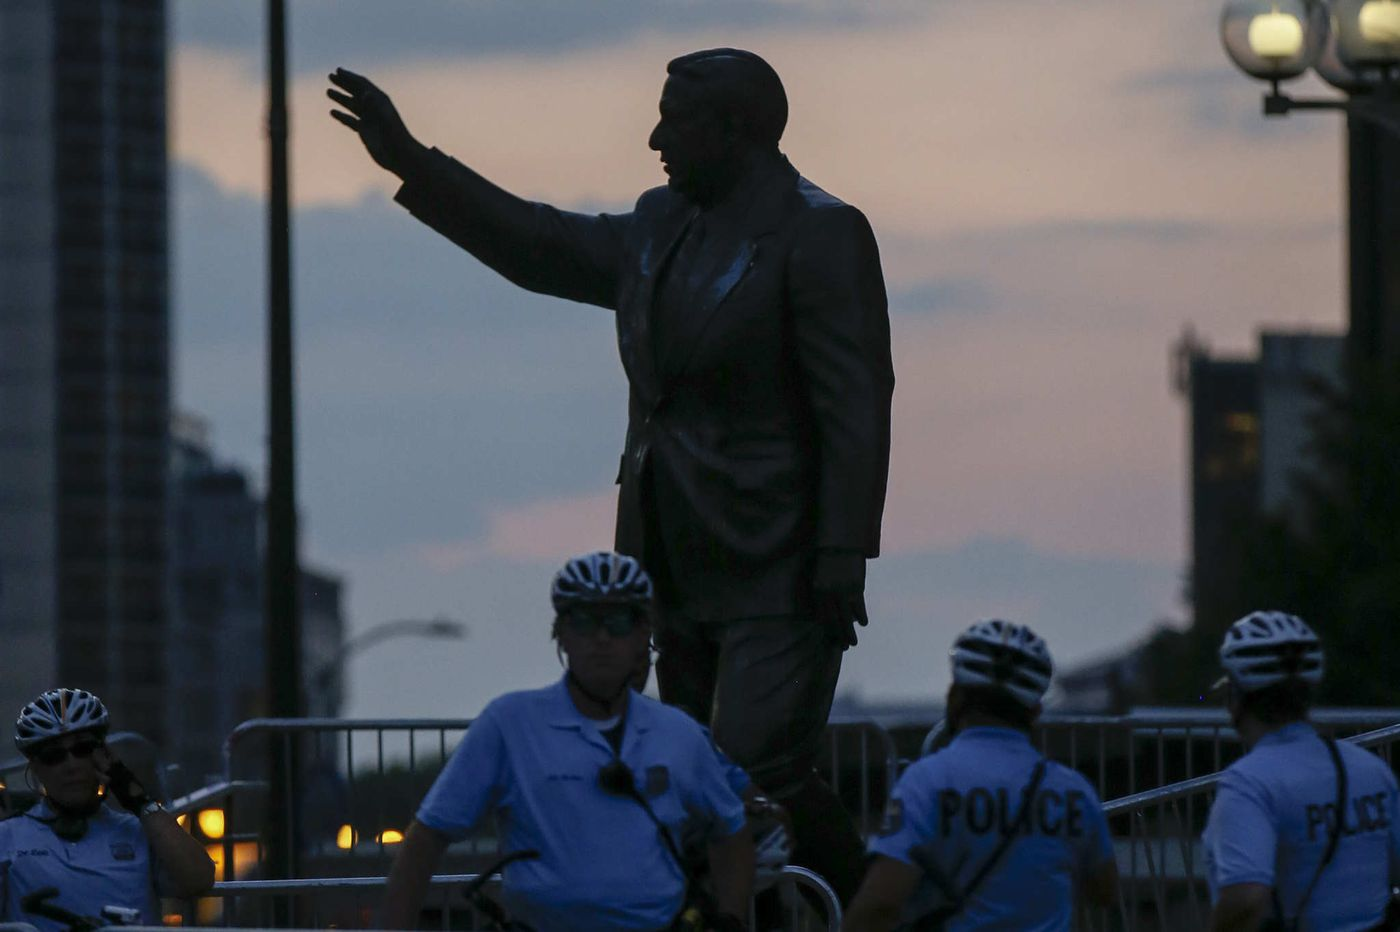 Frank Rizzo statue will remain in Center City until at least June 2021